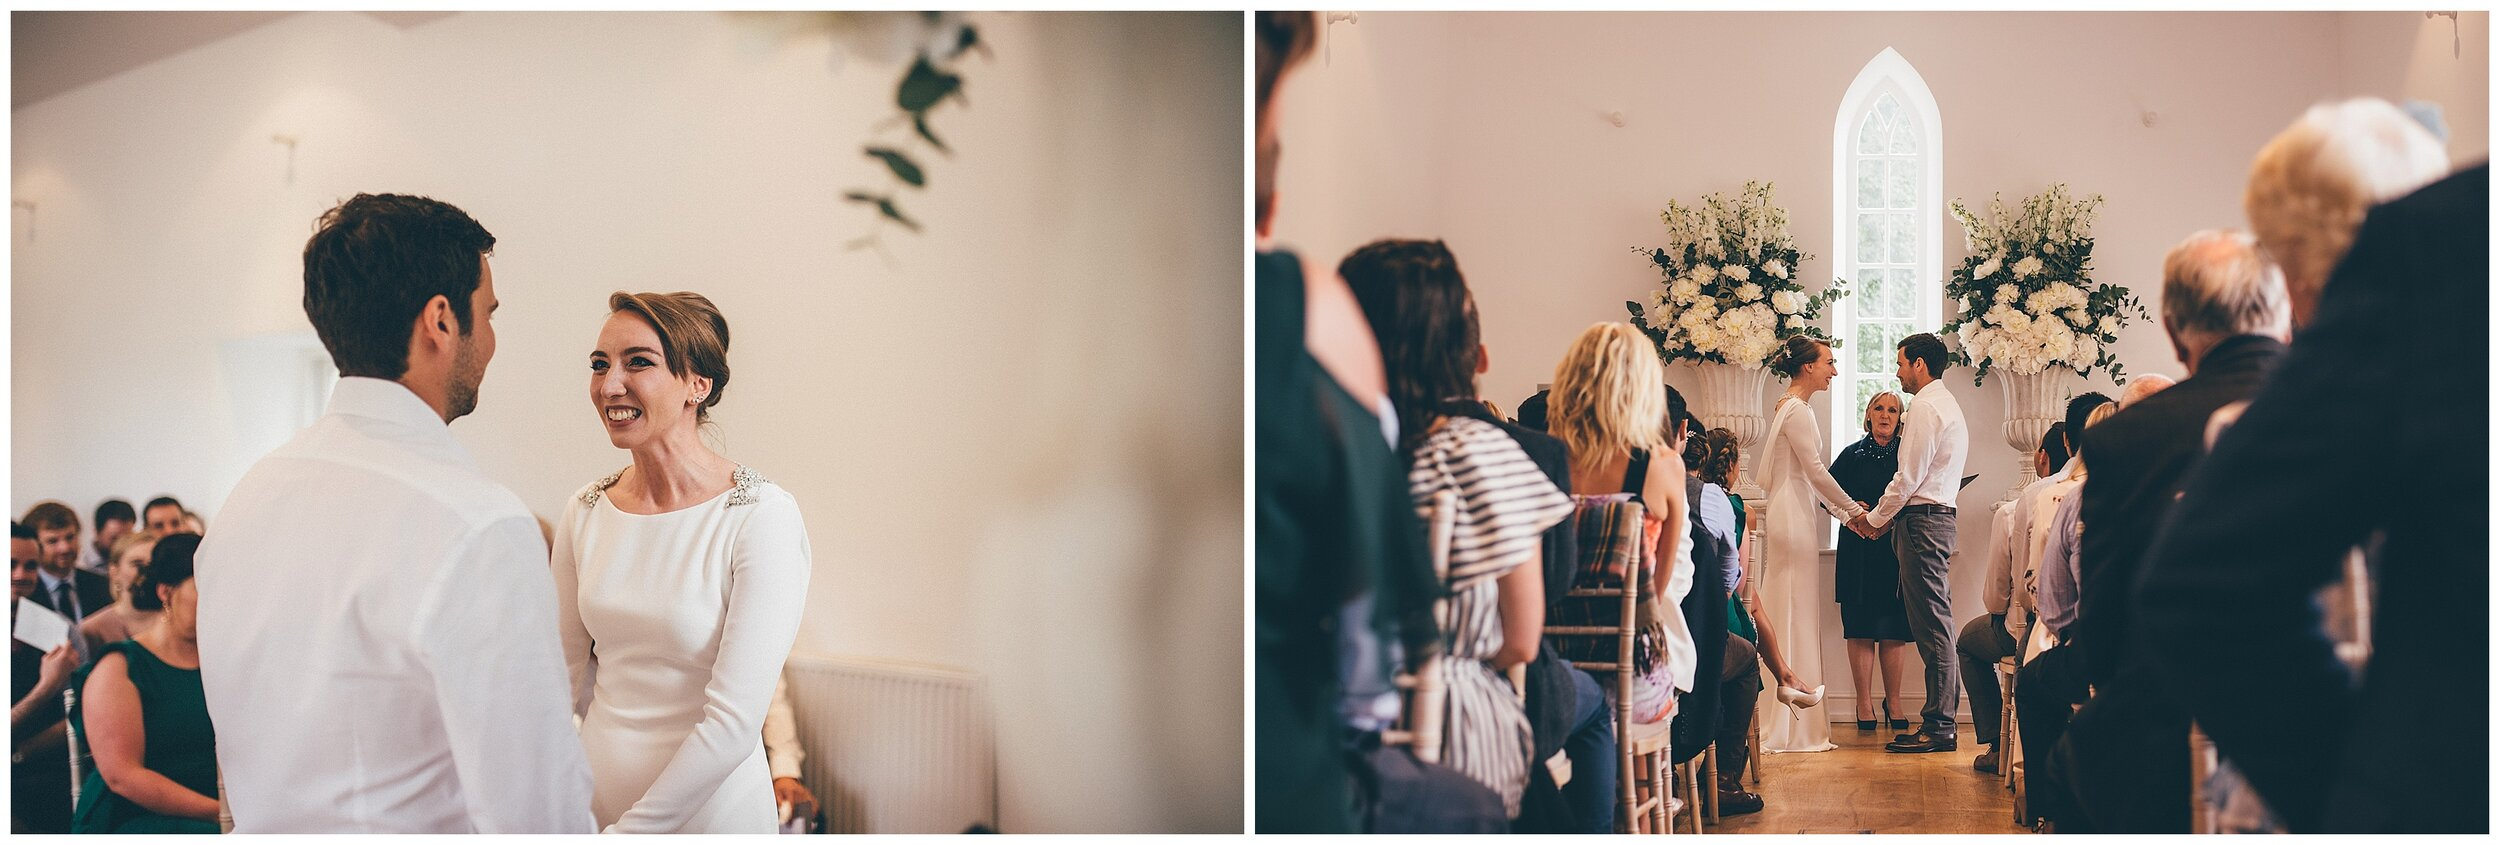 Wedding ceremony at Silverholme Manor at the Graythwaite Estate in the Lake district.